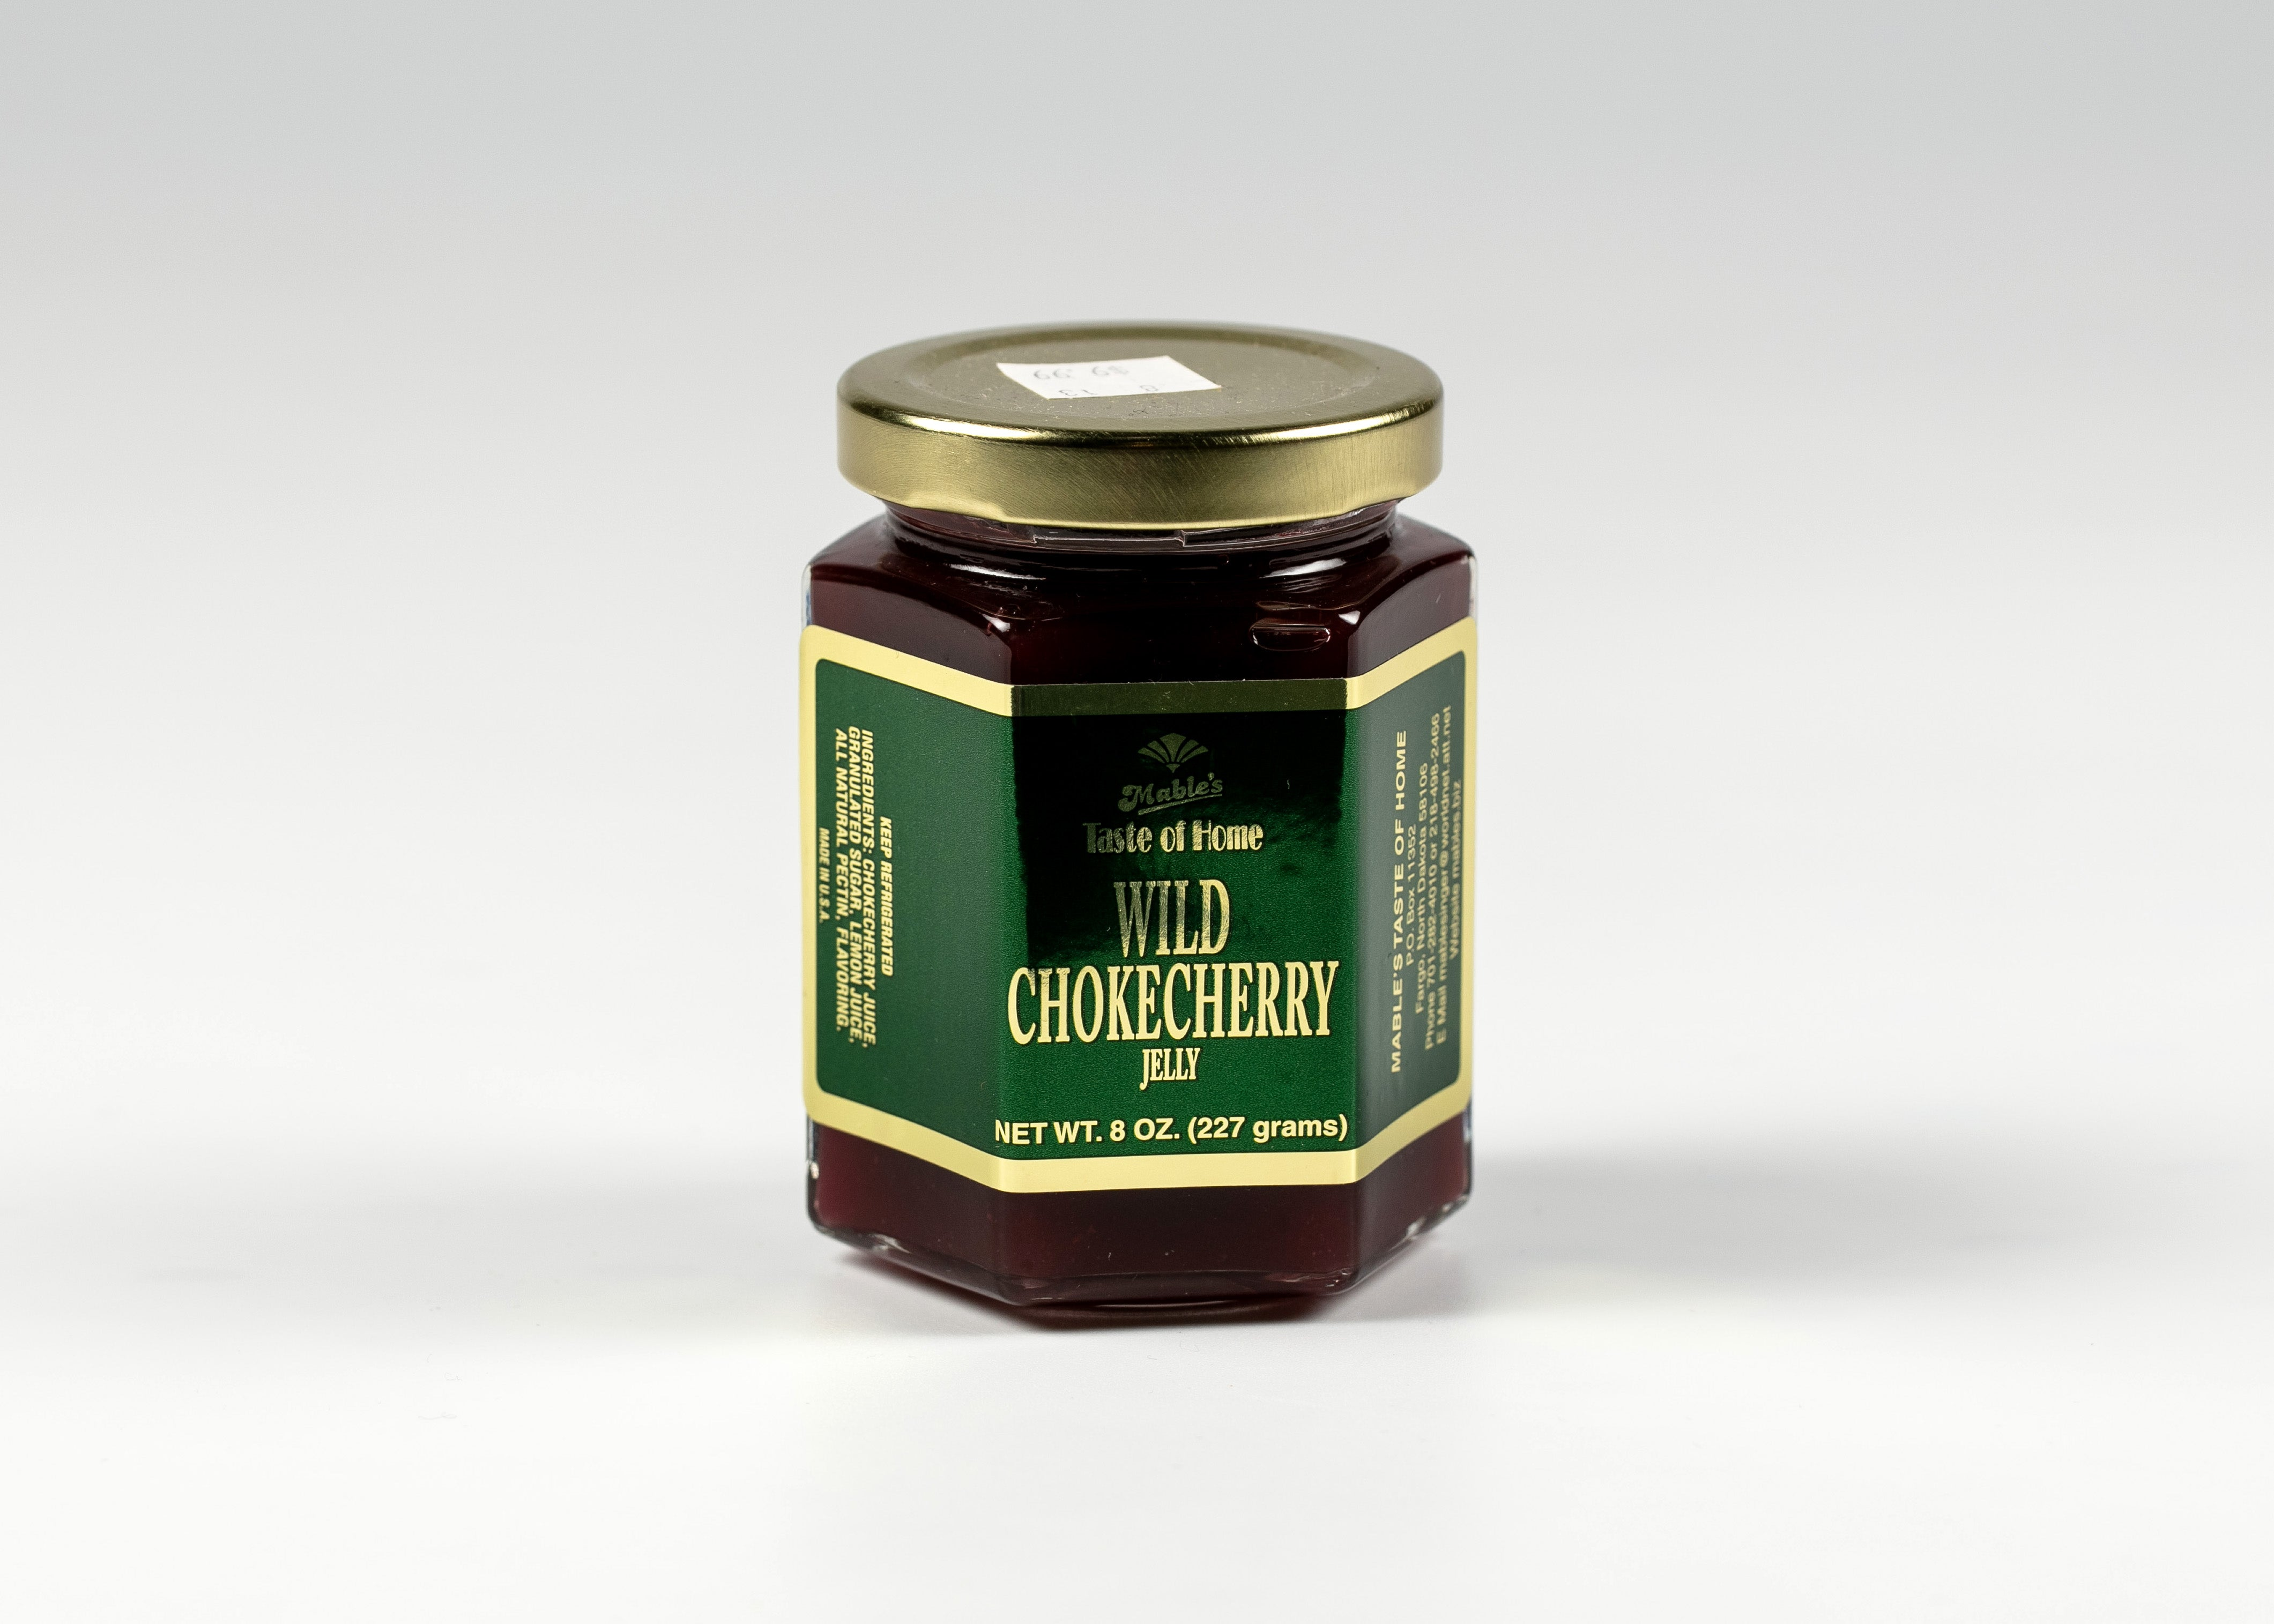 MABEL'S WILD CHOKECHERRY JELLY 8 OZ MADE IN FARGO ND